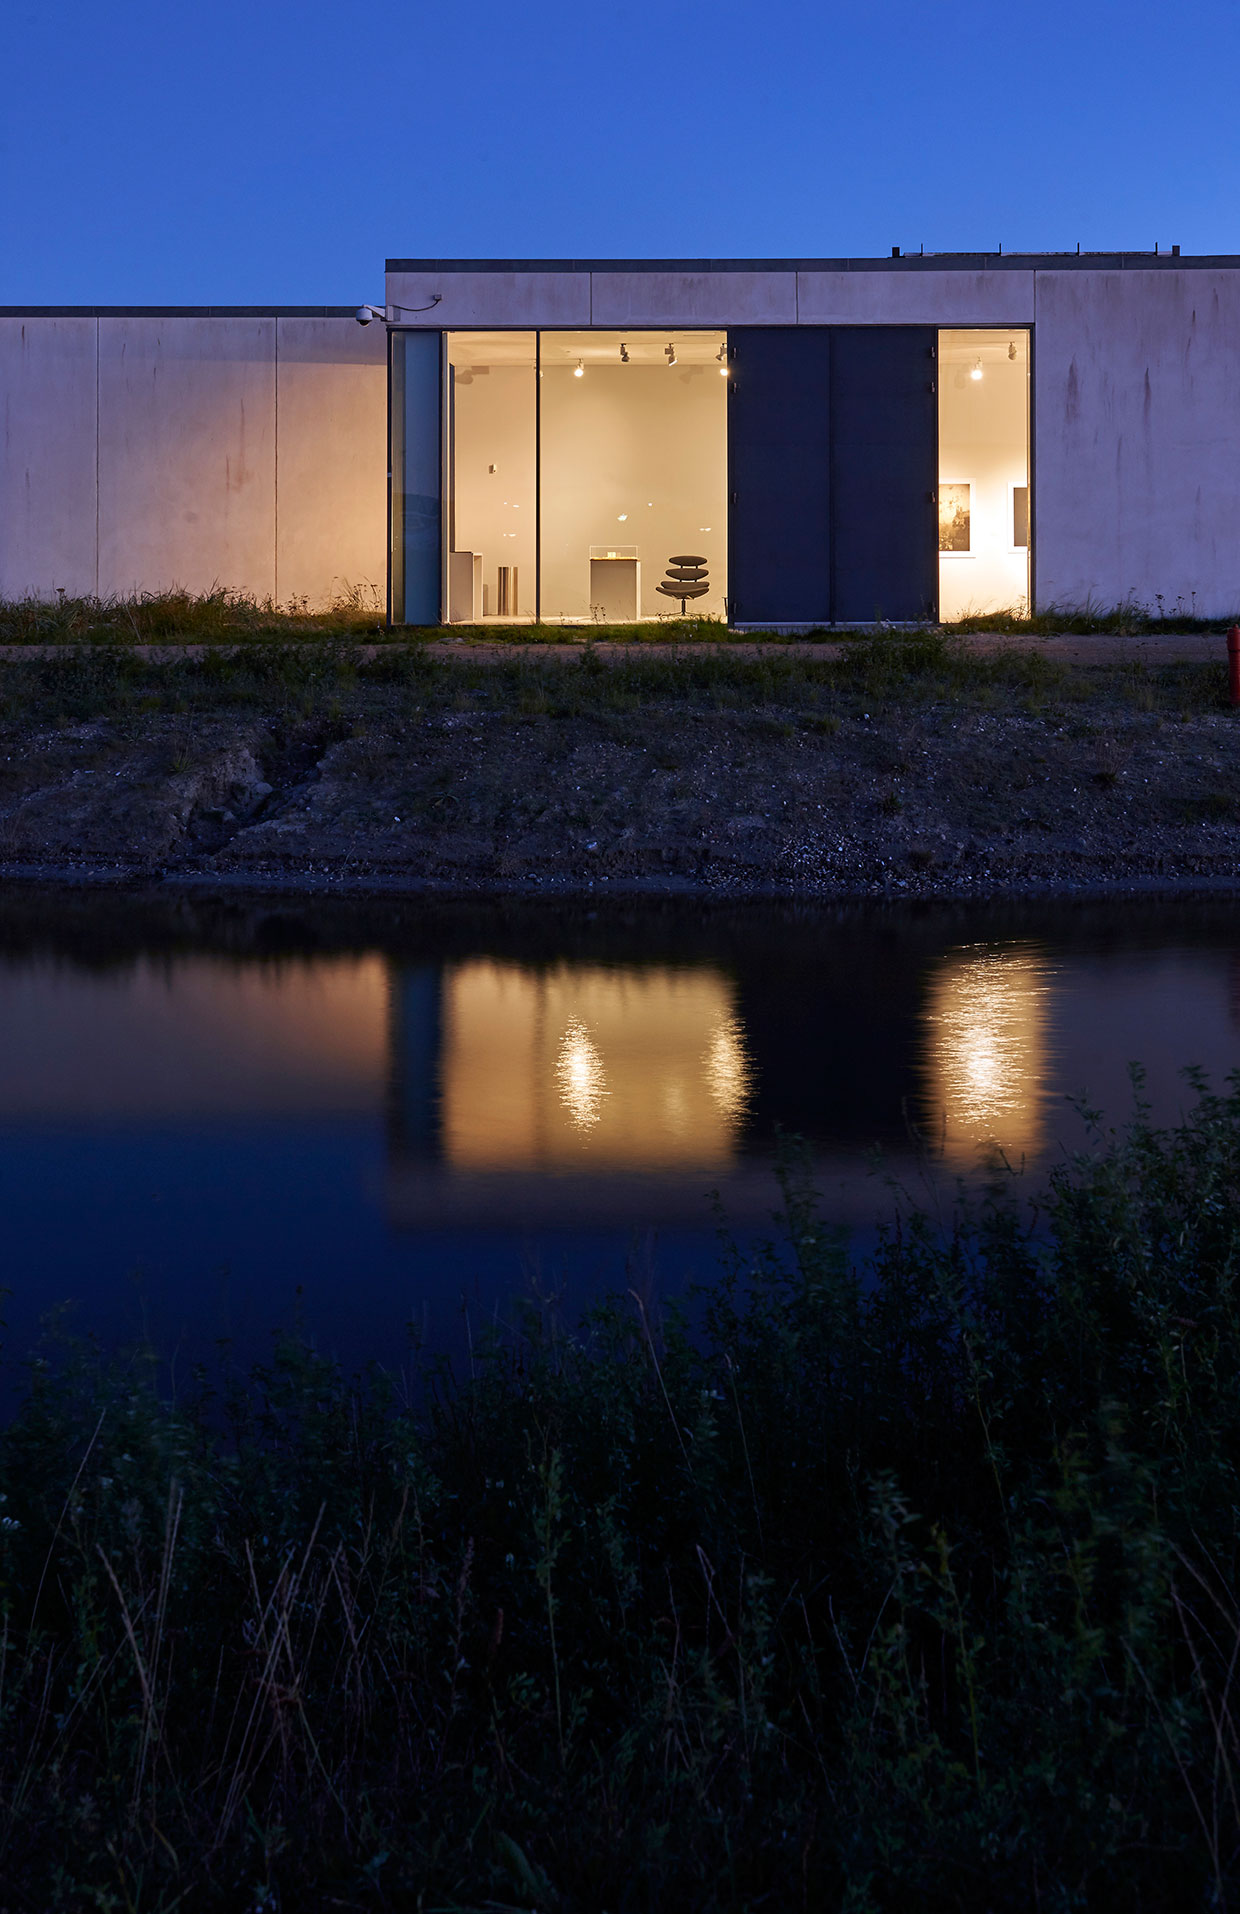 ARKEN Museum of Modern Art. Photo: Torben Petersen